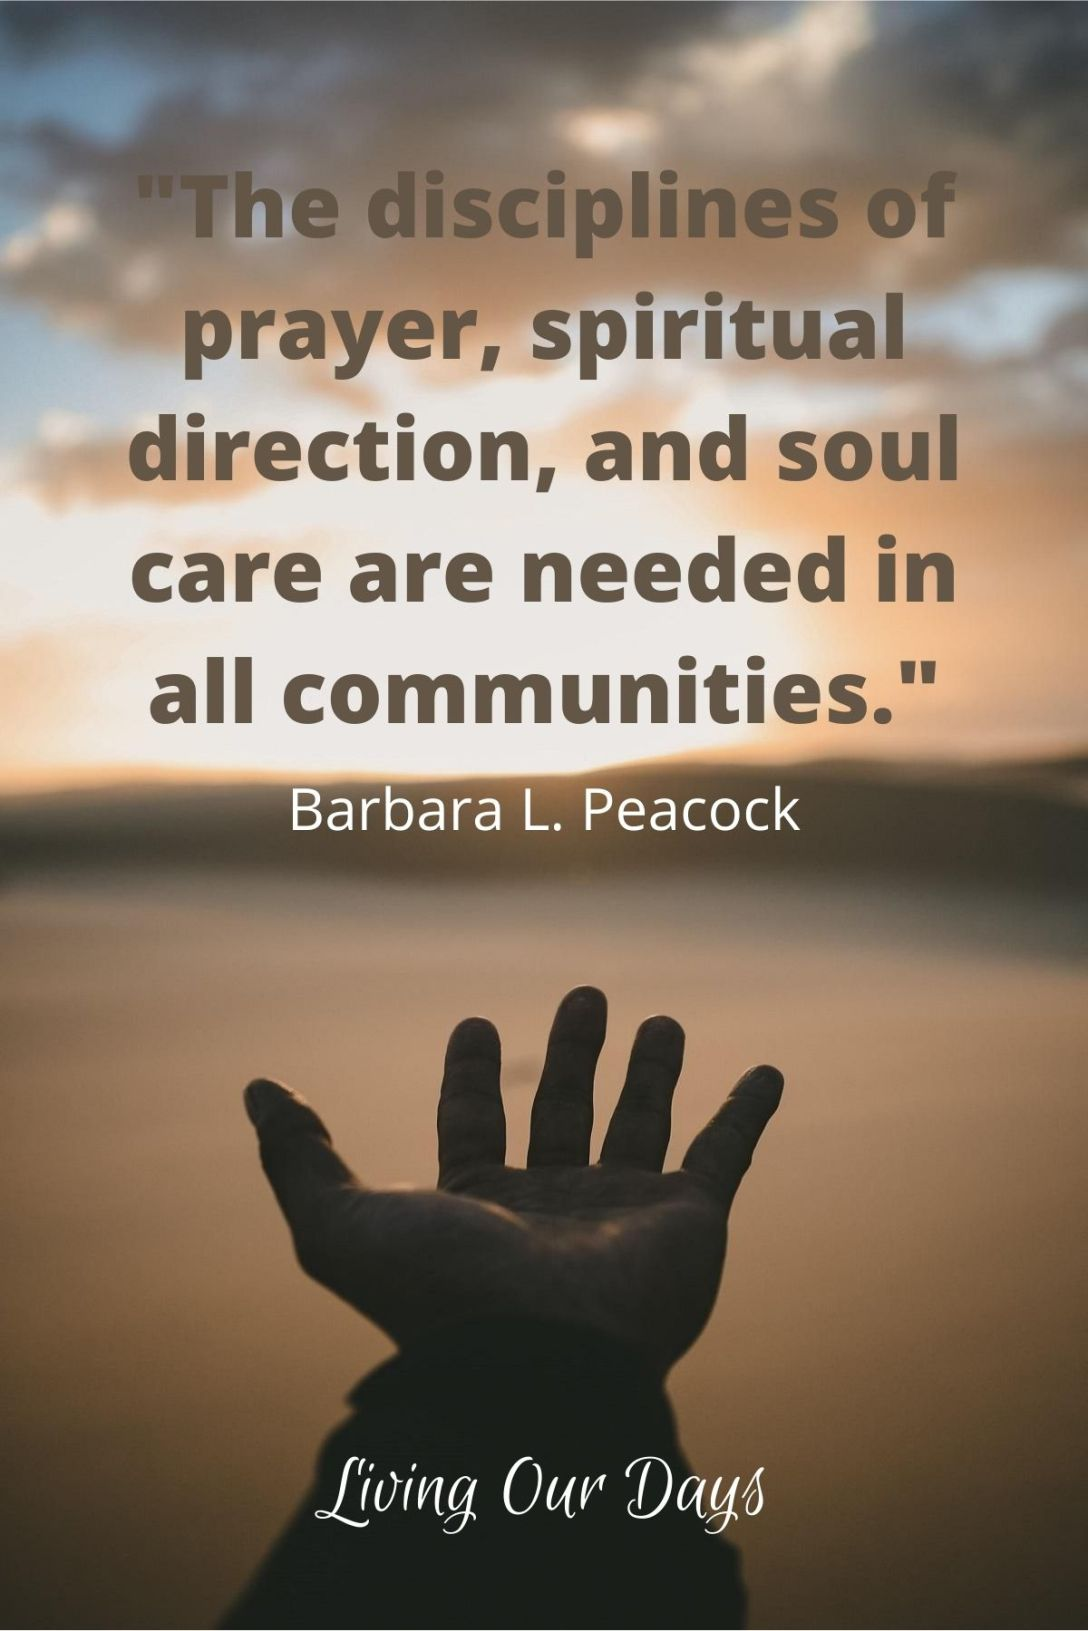 """The disciplines of prayer, spiritual direction, and soul care are needed in all communities."" Barbara L. Peacock"